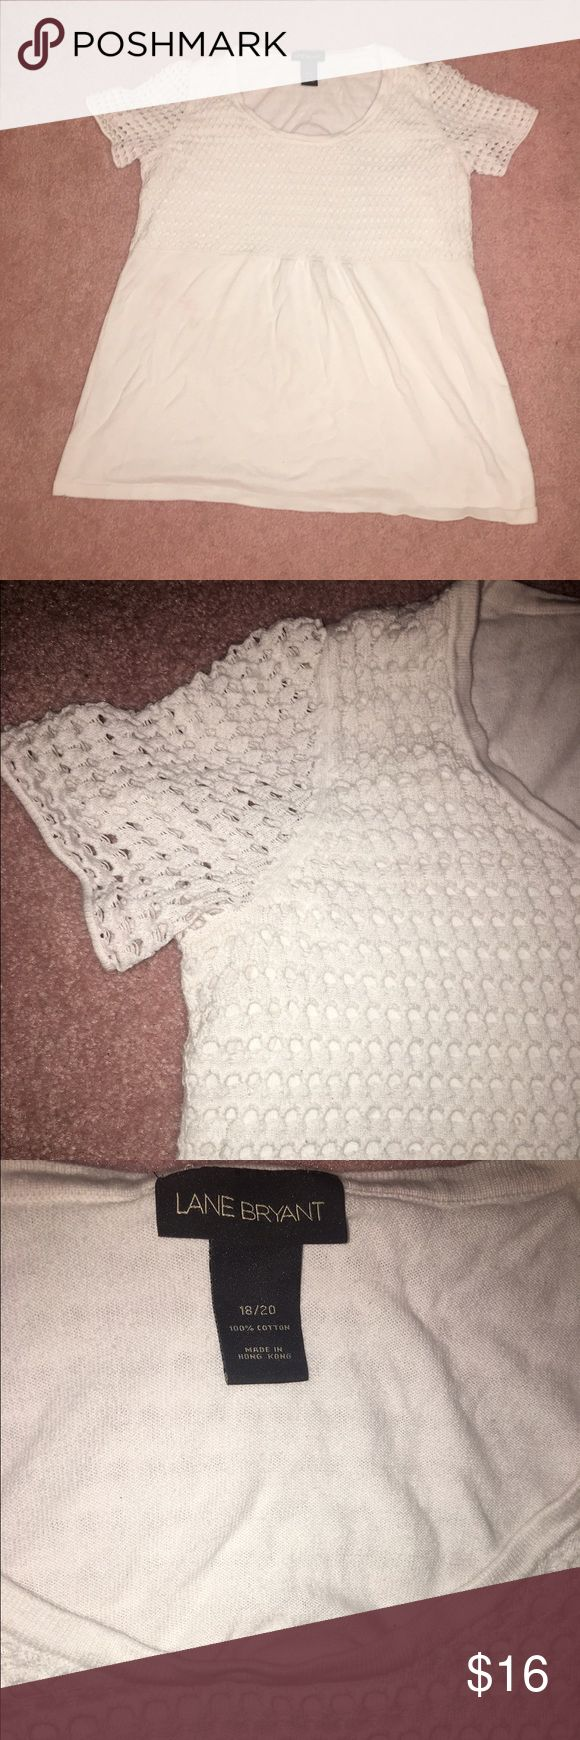 Lane Bryant White Babydoll Top Very cute eyelet pattern on top and sold white on bottom. Sz 18/20 but fits small. Lane Bryant Tops